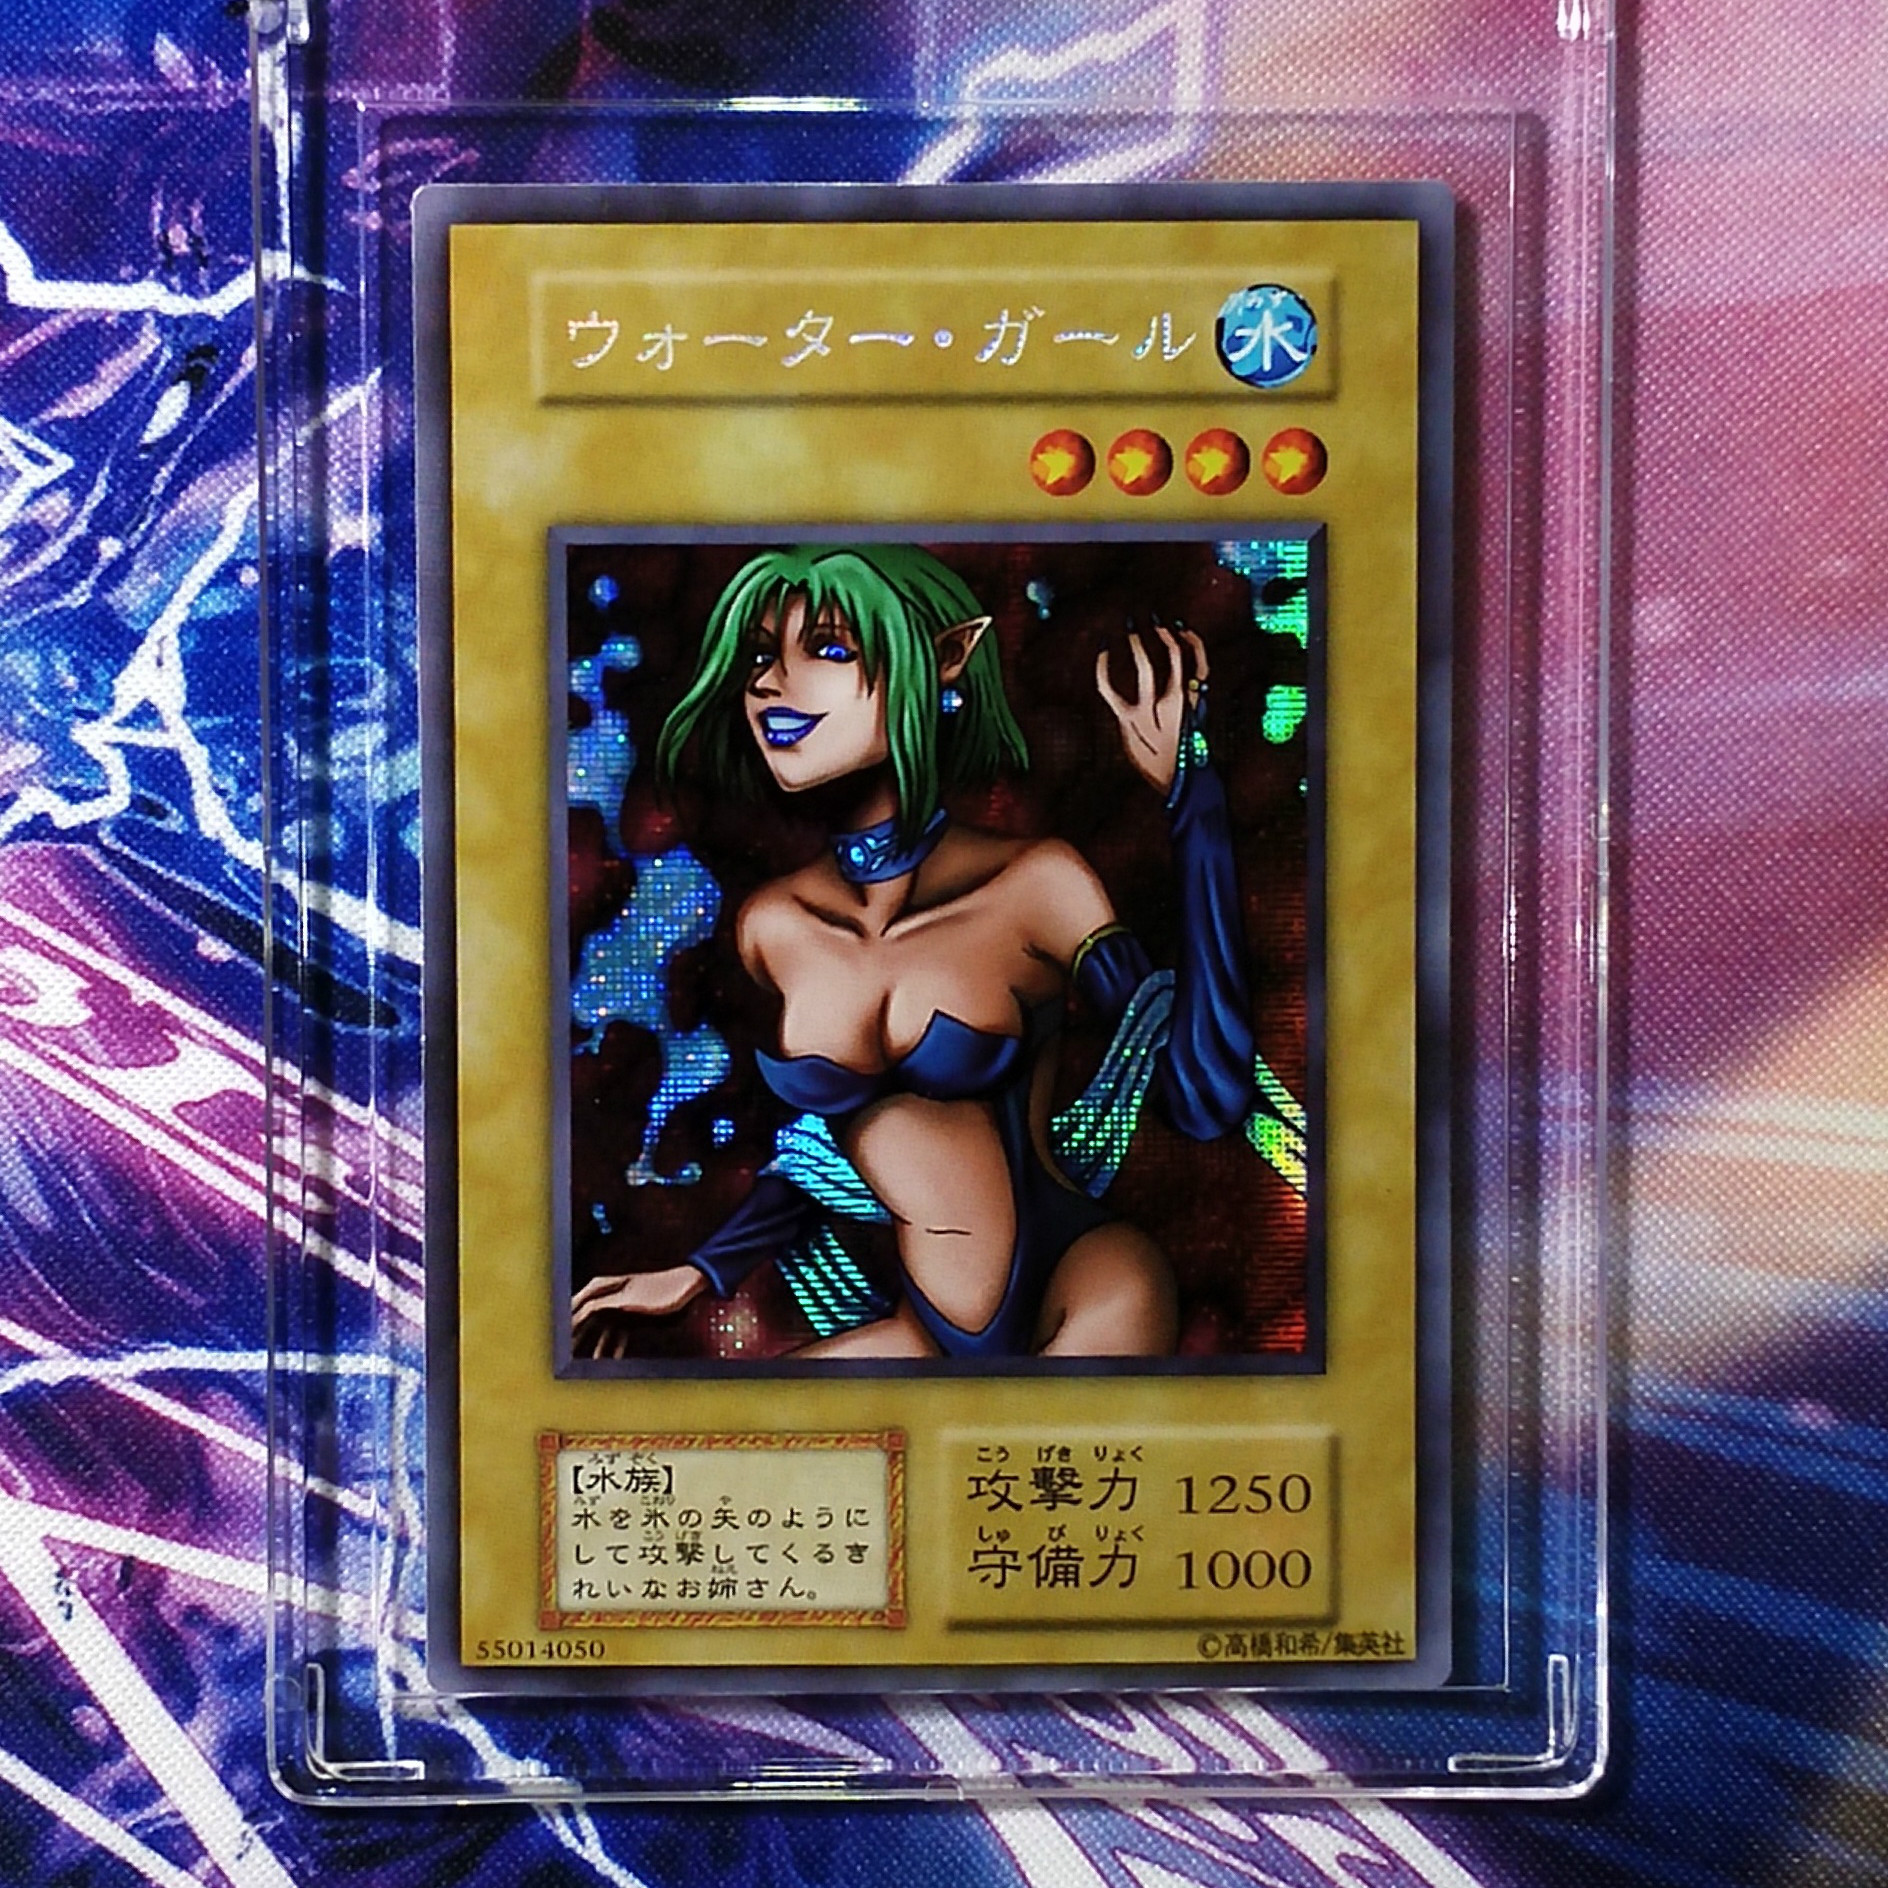 Yu Gi Oh Water Girl Early Love Edition DIY Colorful Toys Hobbies Hobby Collectibles Game Collection Anime Cards